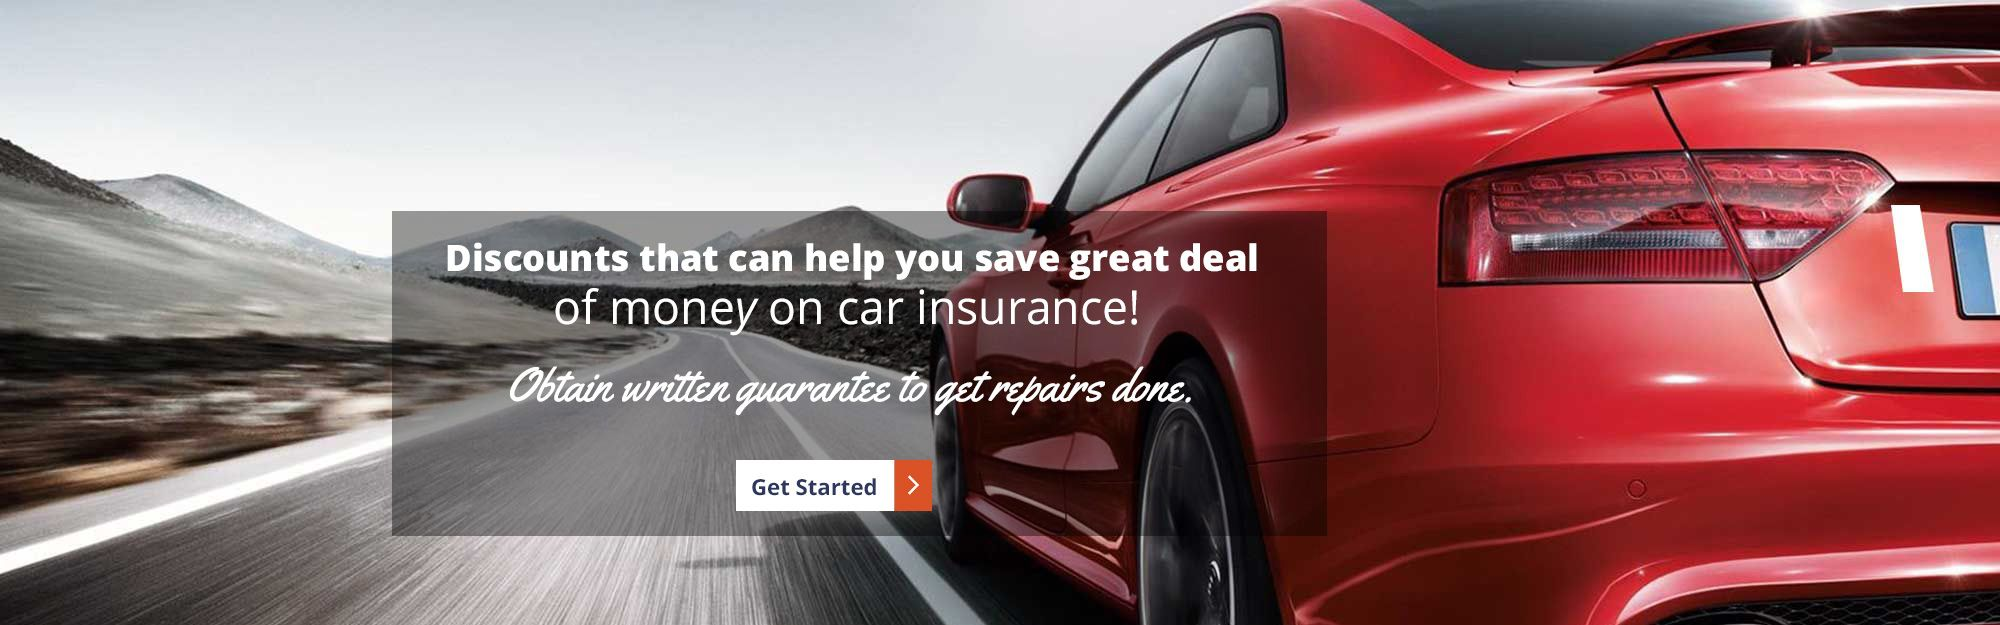 Free Online Car Insurance Quotes Car Insurance Monthly Car